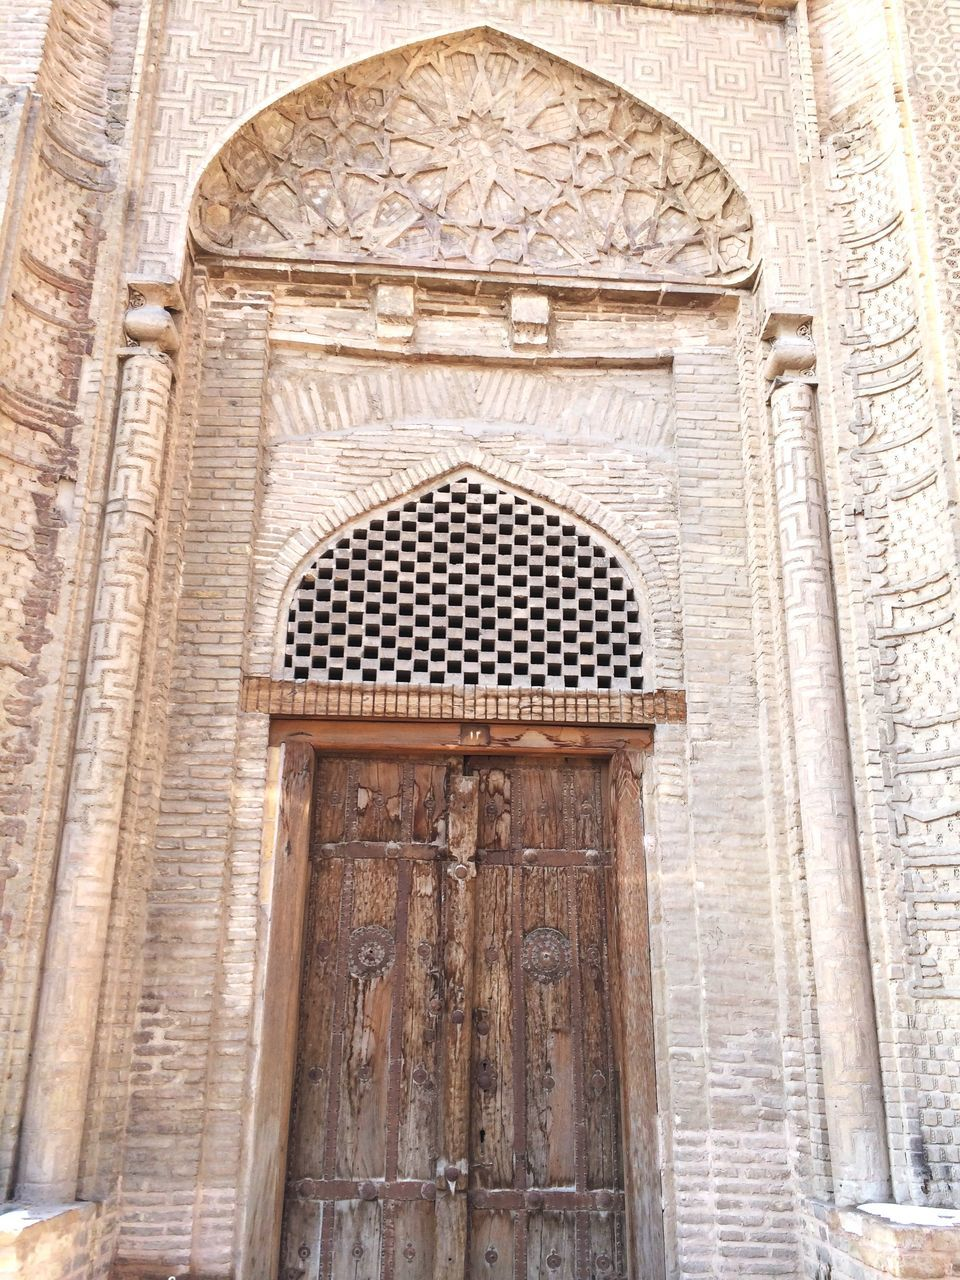 architecture, history, built structure, carving - craft product, travel destinations, religion, building exterior, low angle view, ancient, bas relief, spirituality, place of worship, day, no people, ancient civilization, outdoors, sculpture, close-up